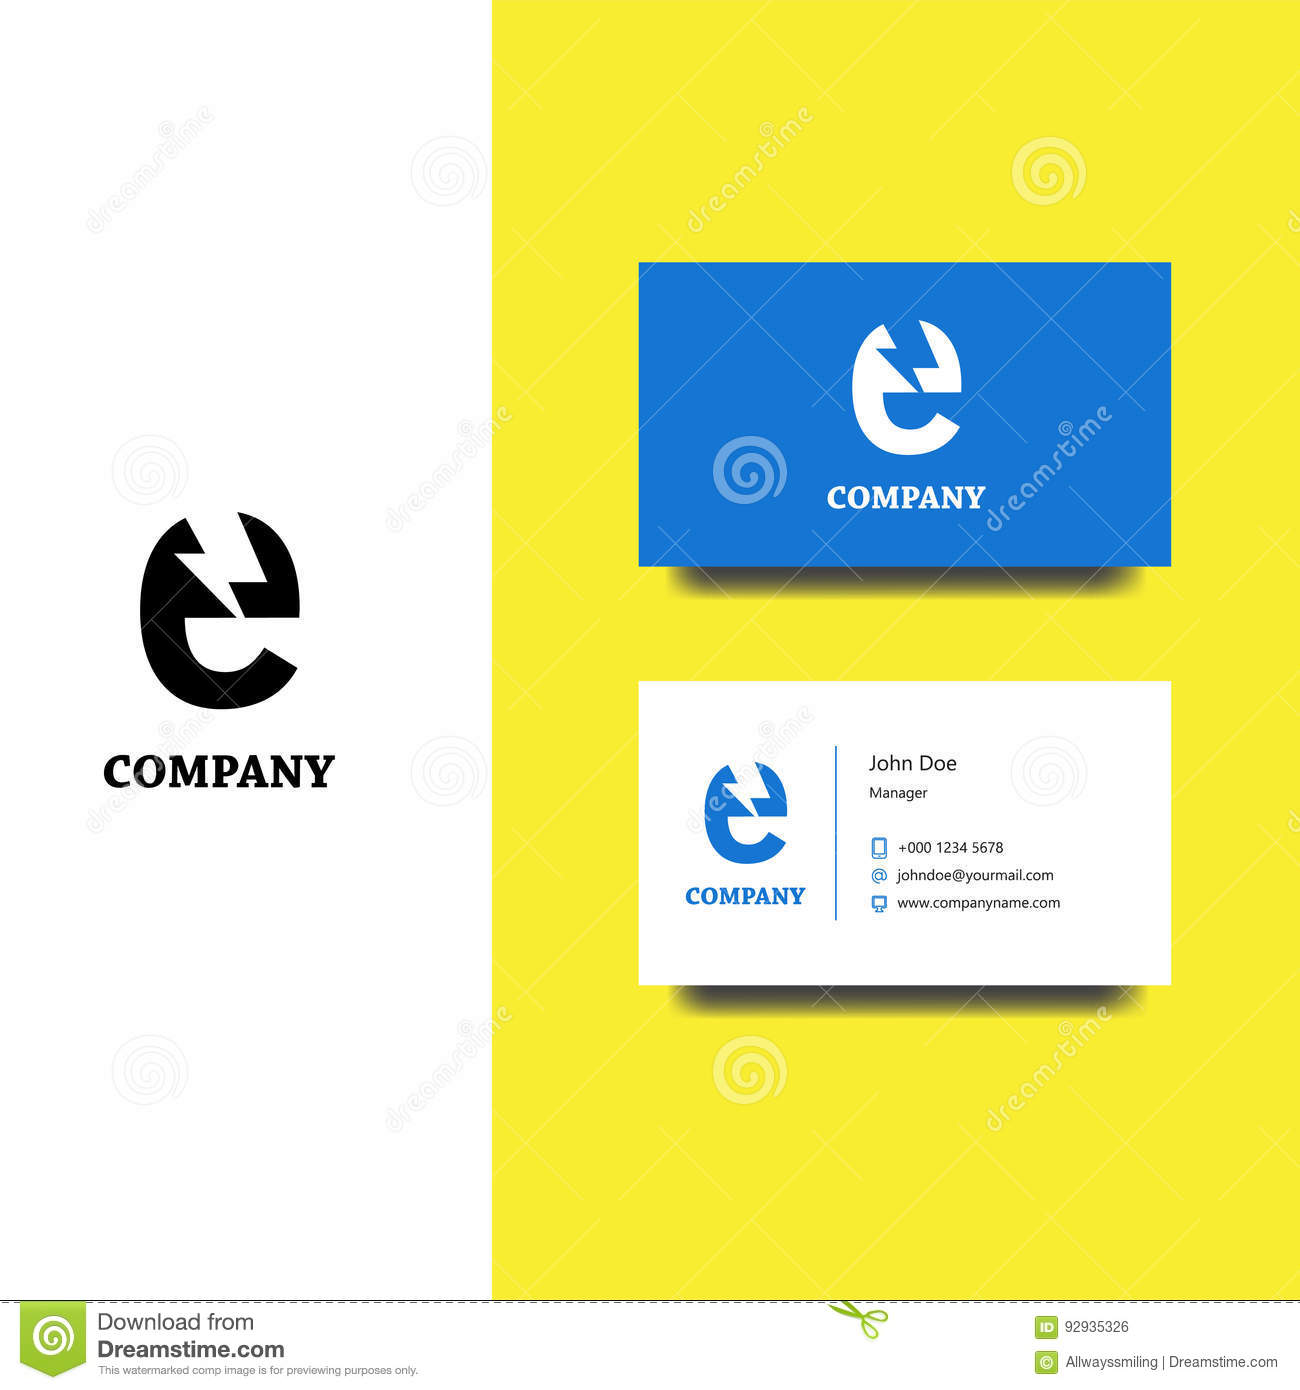 Electronics Services Or Goods Company Logo And Business Card ...